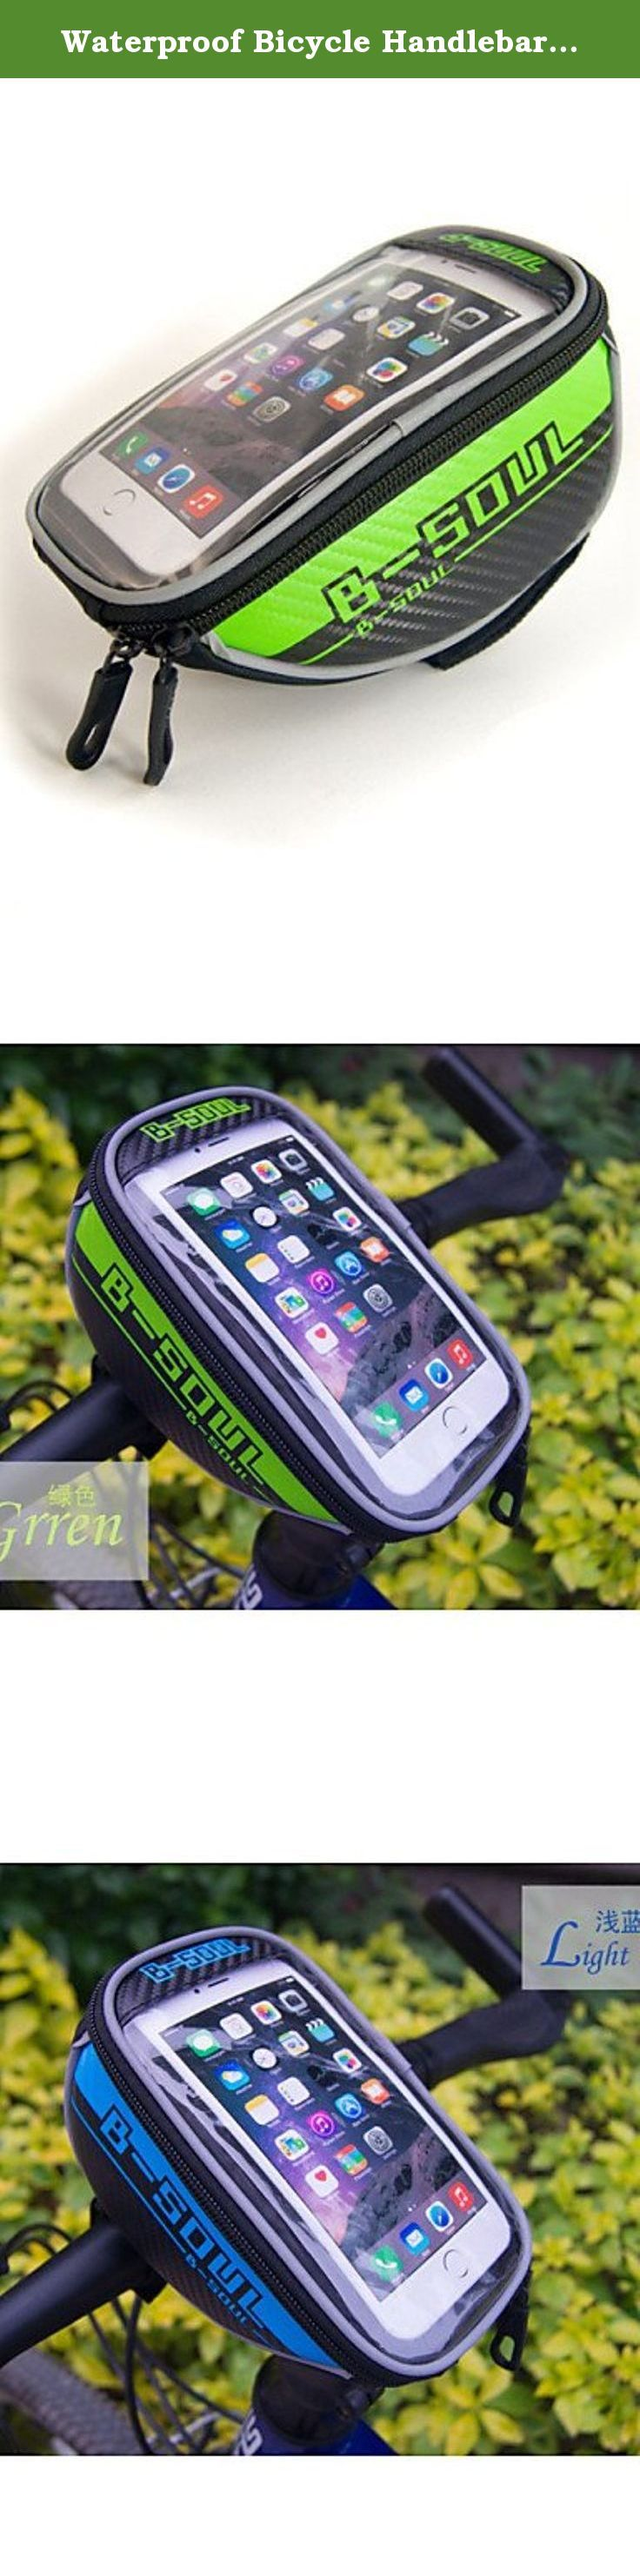 """Waterproof Bicycle Handlebar Bag for 5.5"""" Cellphones , red. Type:Bike Handlebar Bag, Bike Frame Bag, Cell Phone Bag, Activity:Cycling/Bike, Gender:Unisex, Occasion:Outdoor, Material:Nylon, Color:Blue, Gray, Red, Green, Function:Touch Screen, Wearable, Reflective Strip, Rain-Proof, Waterproof, Dimension (L¡ÁW¡ÁH) (cm):18*10*7cm, Net Weight (kg):0.112, Capacity (L): Capacity Range (L): Compatible Cell Phone Brands:Other Similar Size Phones, Iphone 6 Plus/6S Plus, Iphone 6/IPhone 6S, LG G3..."""